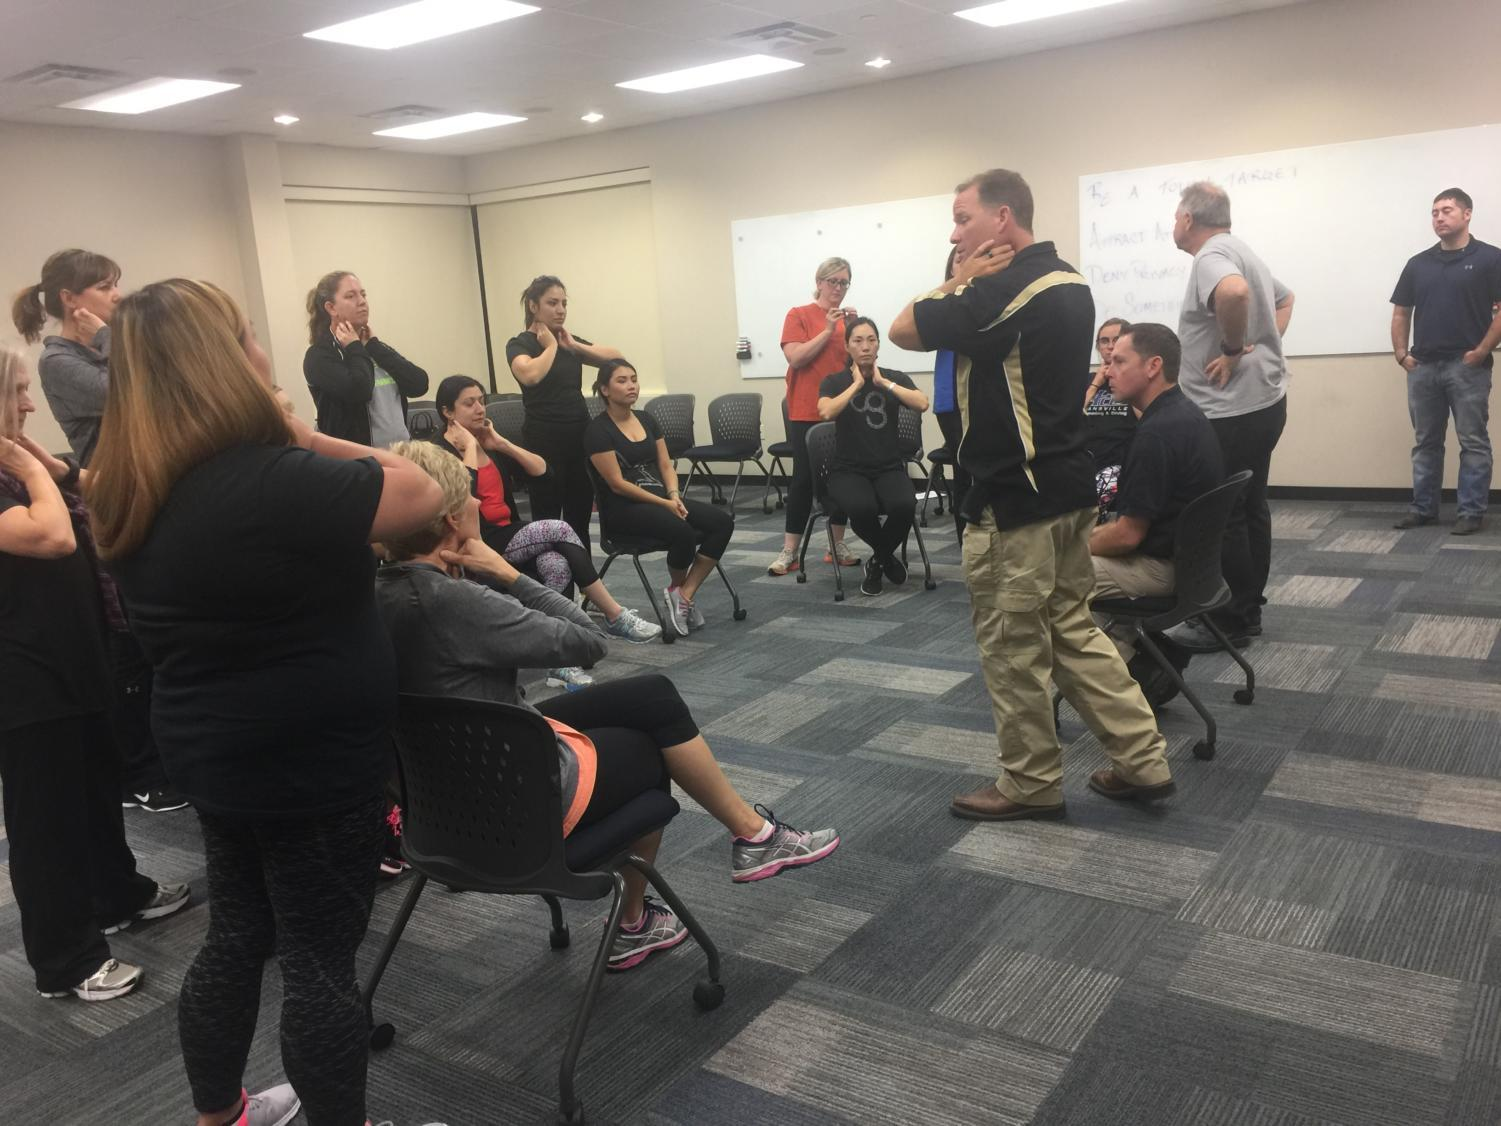 The 14 girls participating in the women's self defense class practice using pressure points. Pressure points can knock out the attacker with a simple hit. The classes take place at the Coppell Police Department on Wednesday's from 6:30 - 8 p.m.